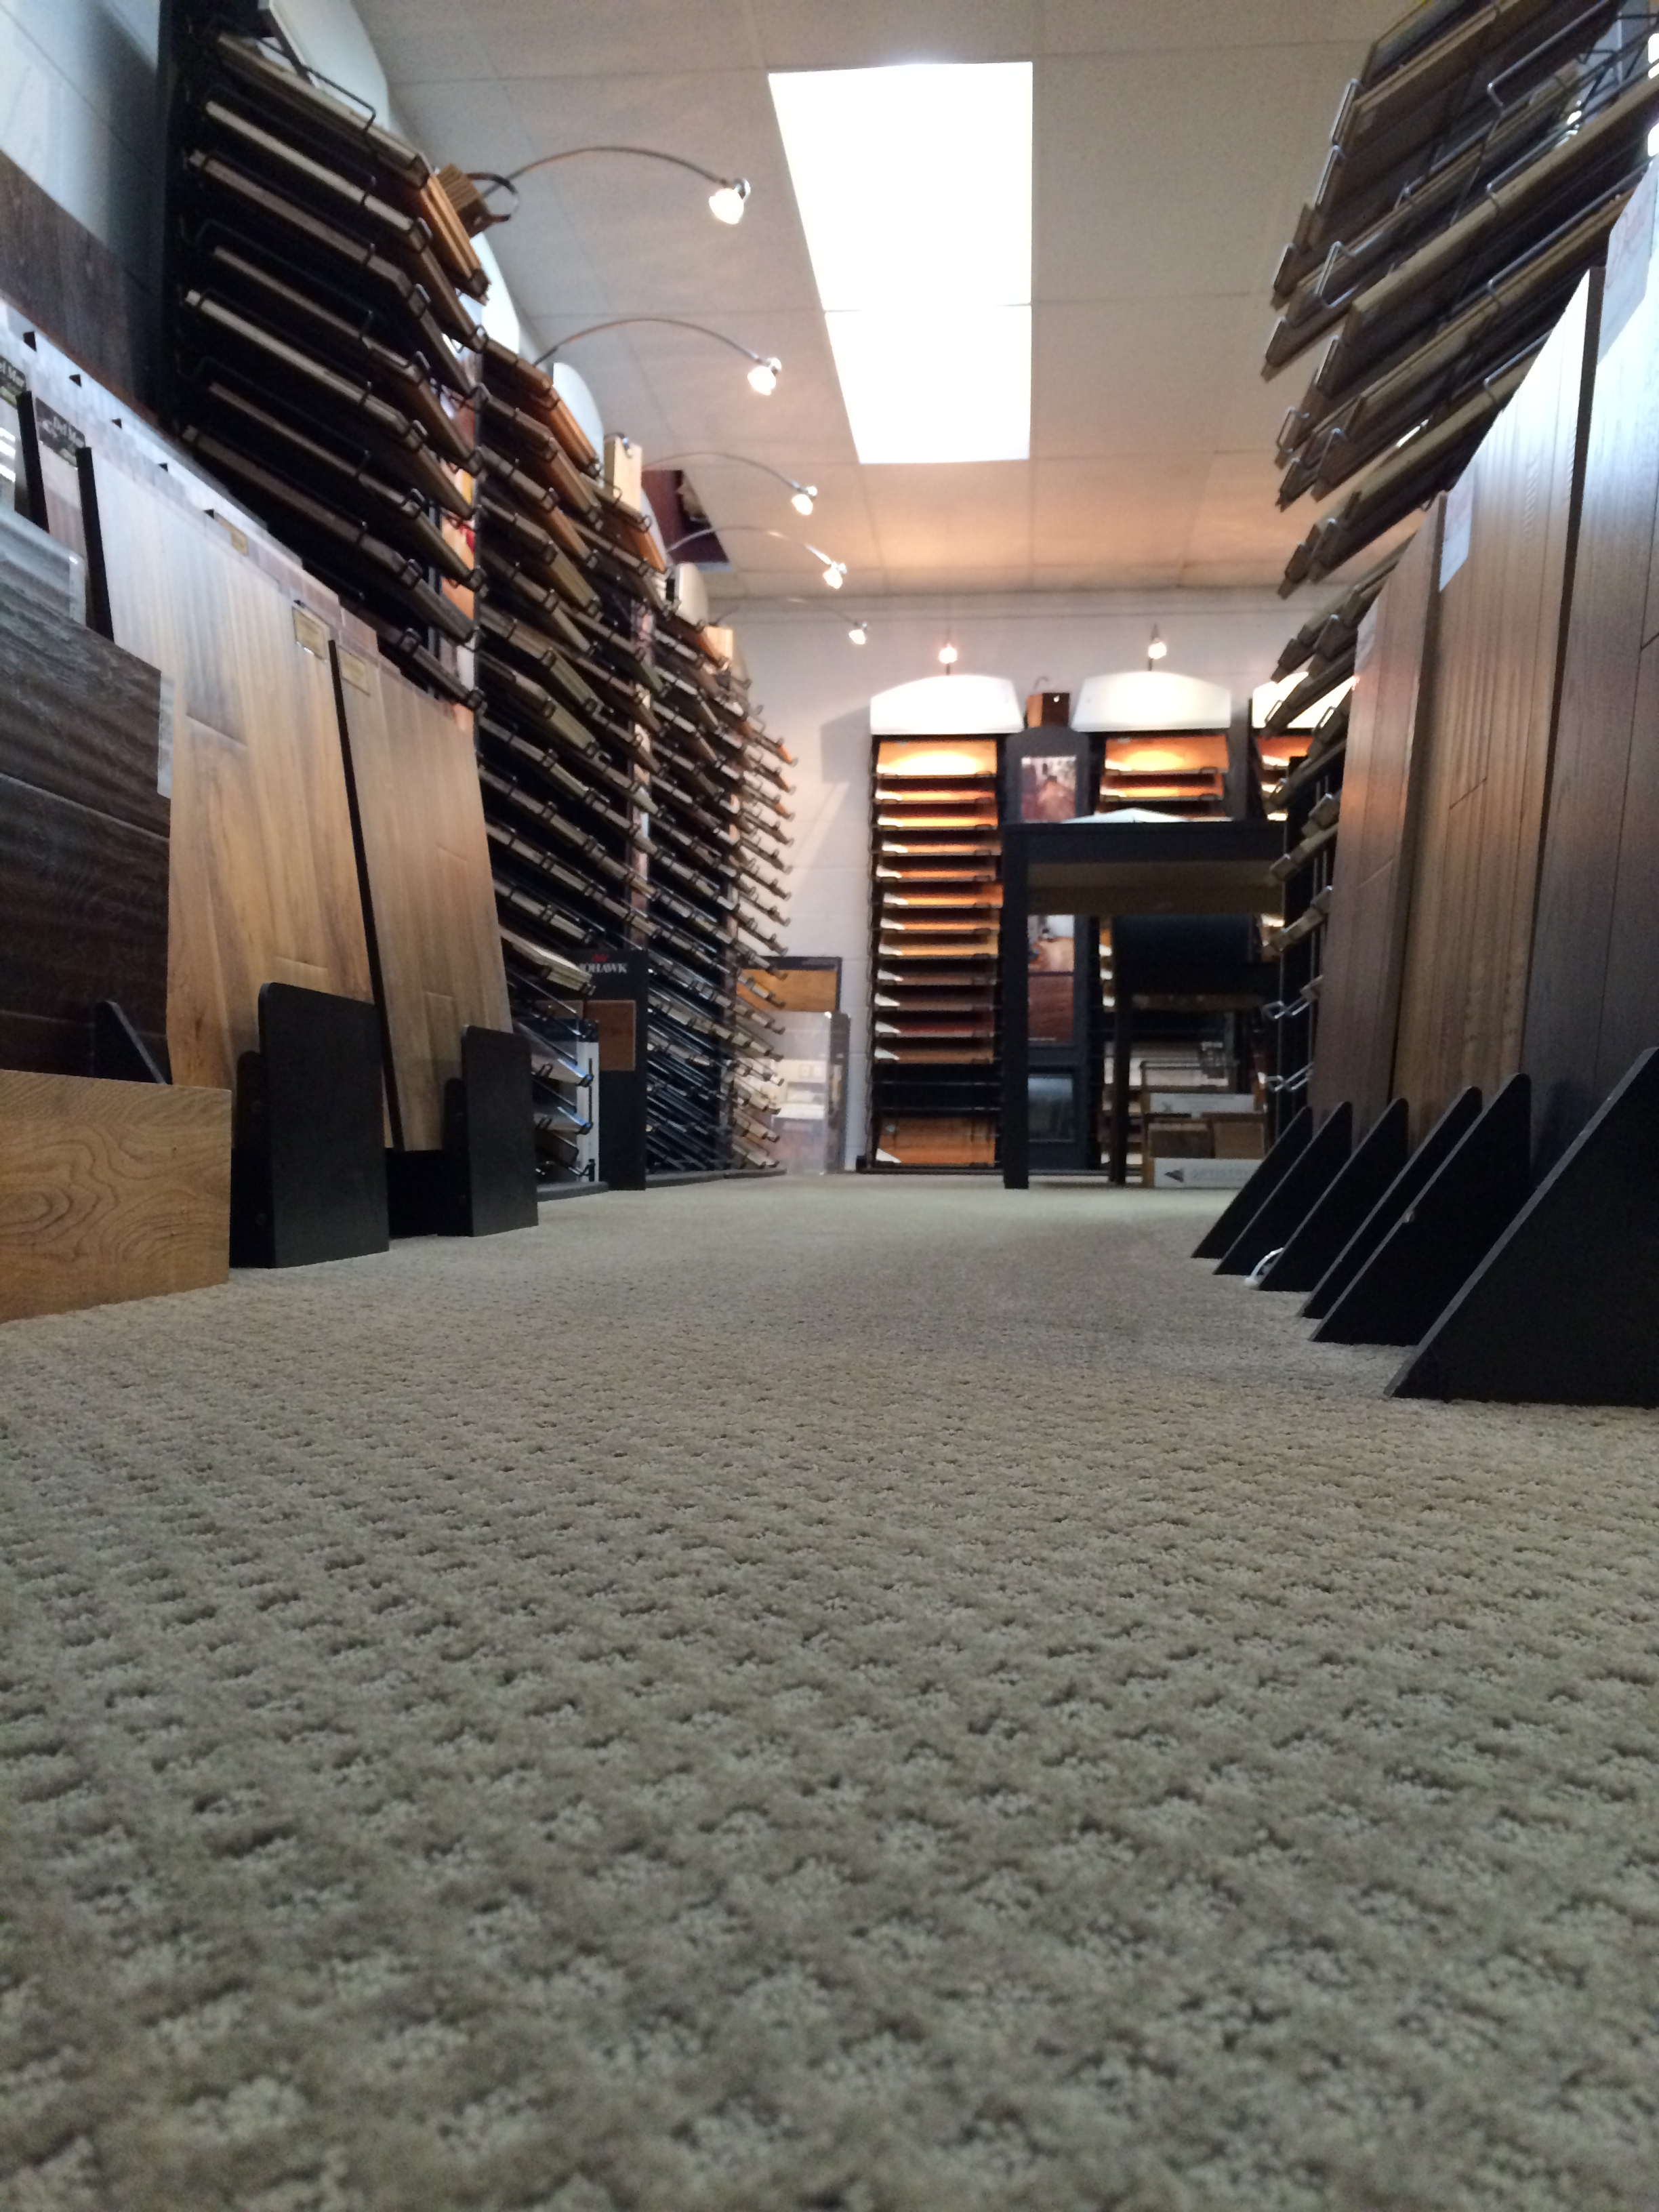 Local floor store dublin ca diablo flooring inc diablo diablo flooring is here to bring the best possible pricing along with beautiful and complete installation to the bay area shop our wide selection of name dailygadgetfo Images